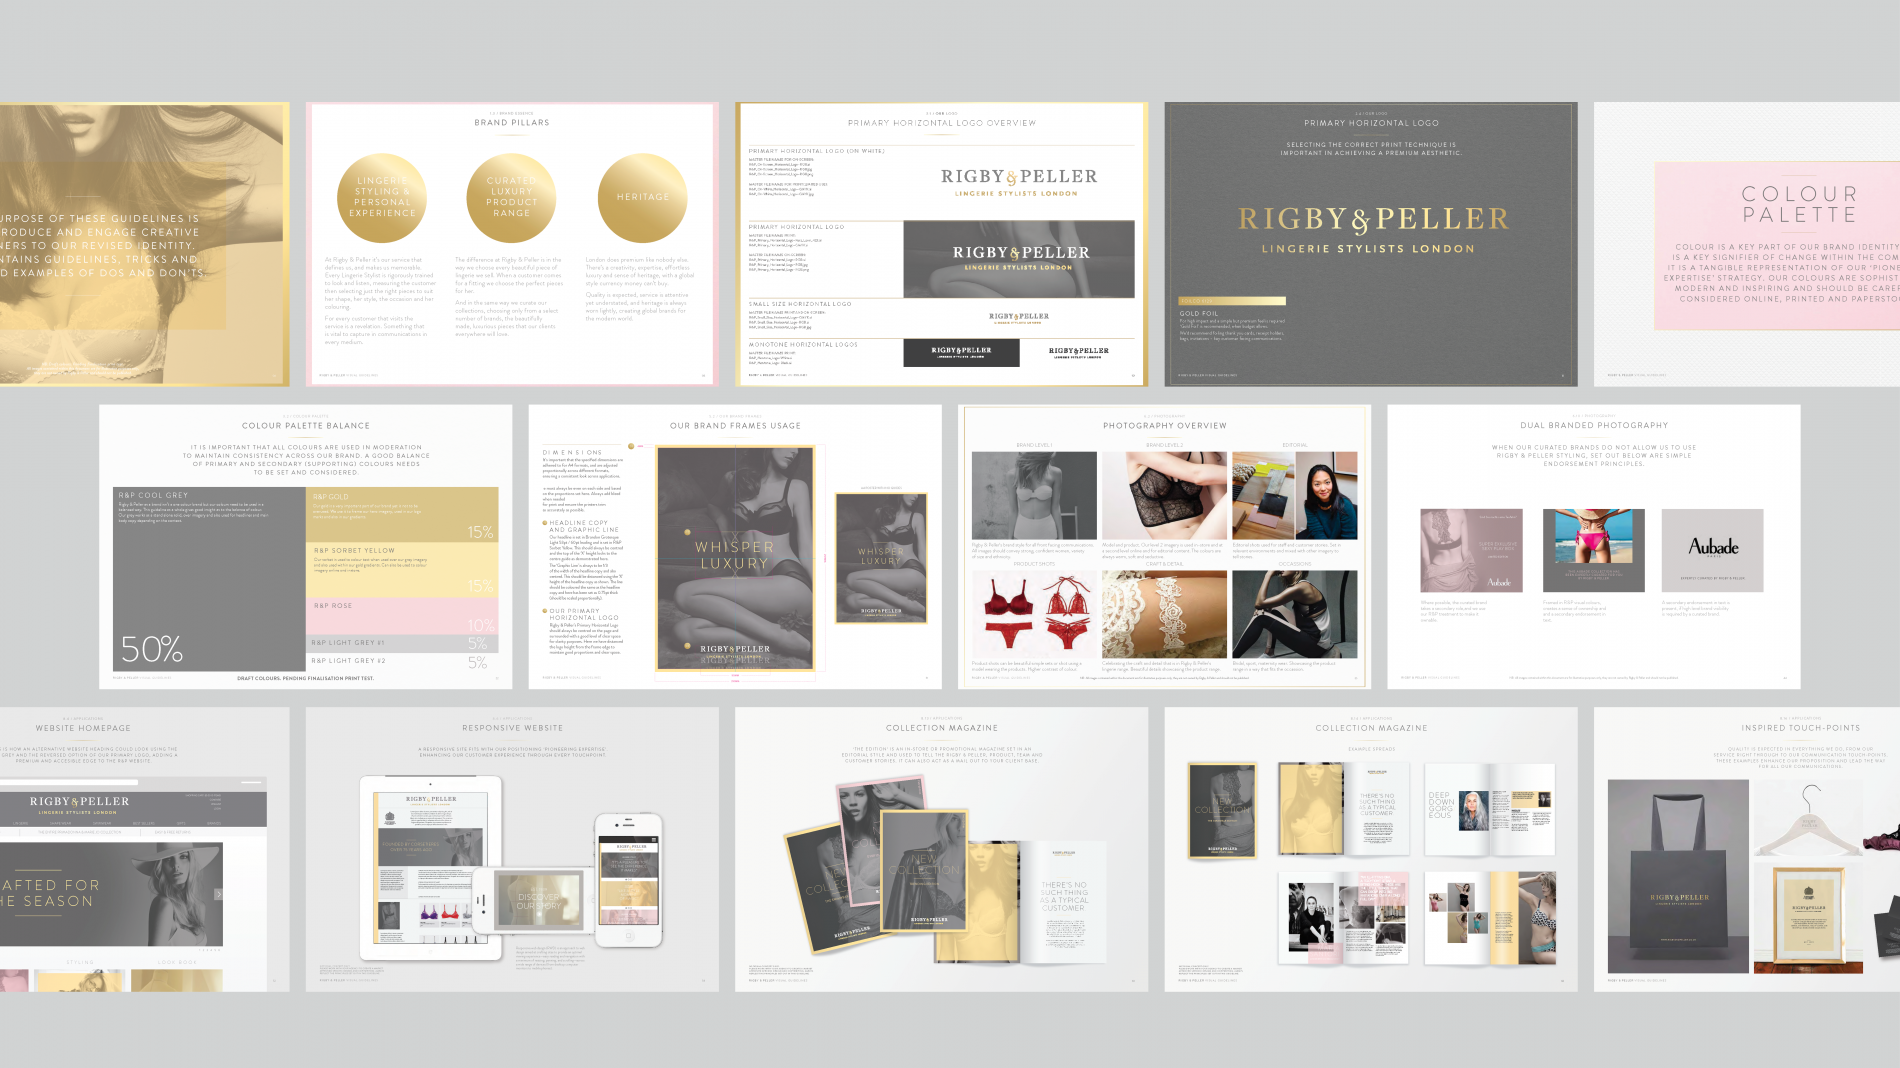 Rigby & Peller brand guideline pages